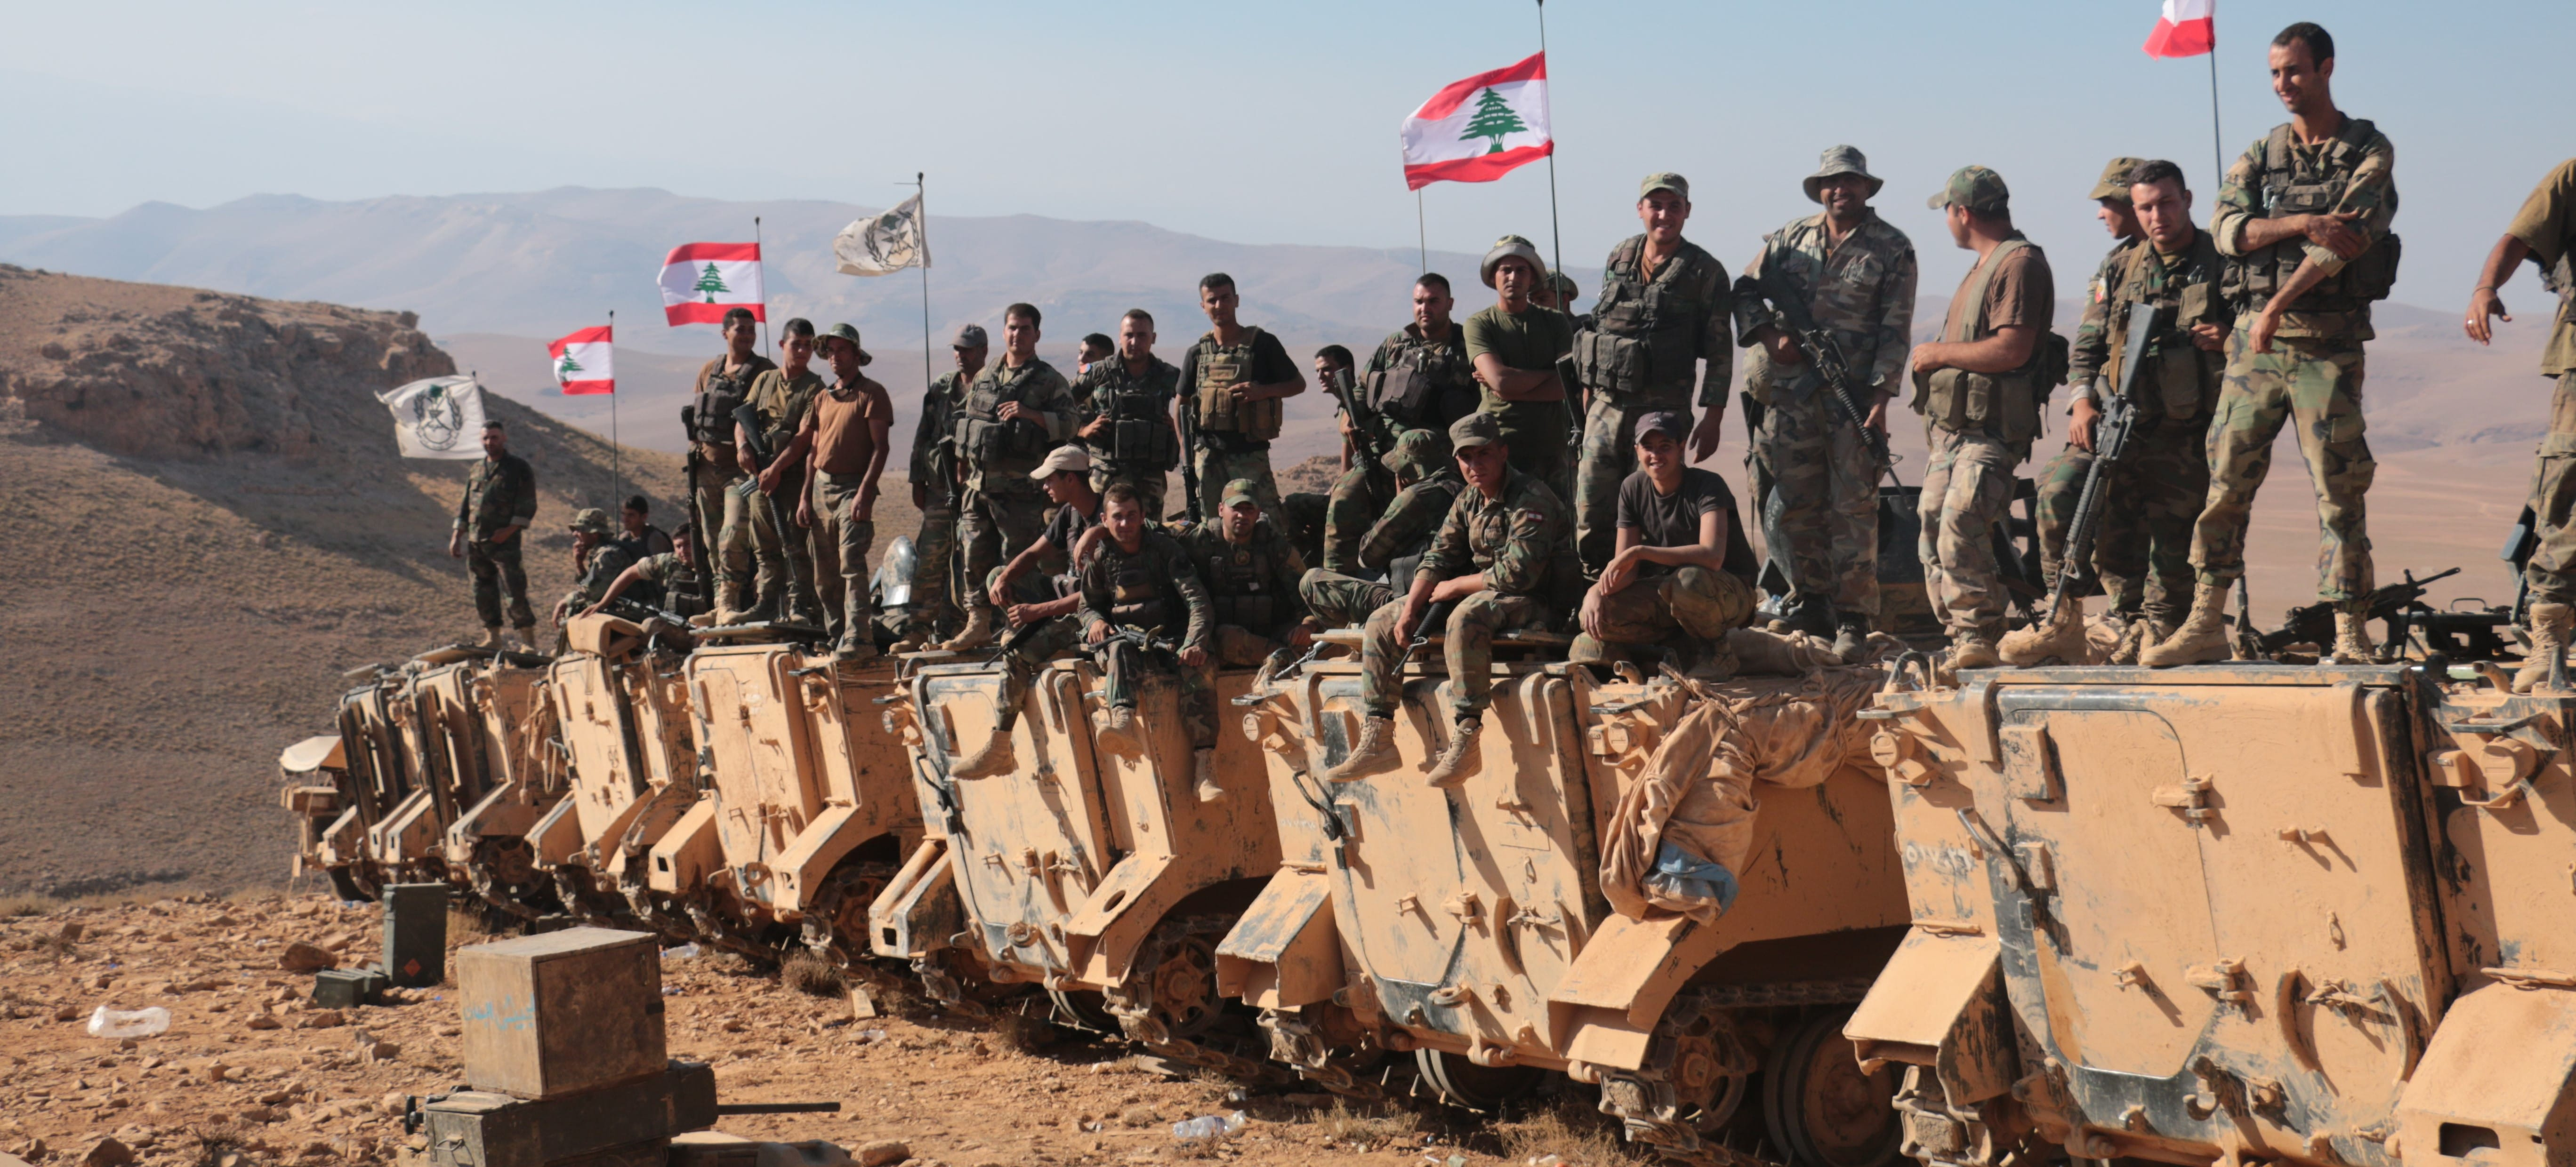 Lebanese soldiers at the Lebanese-Syrian border, August 2017 (Photo: Getty Images/Anadolu Ageny/Ali Akman)